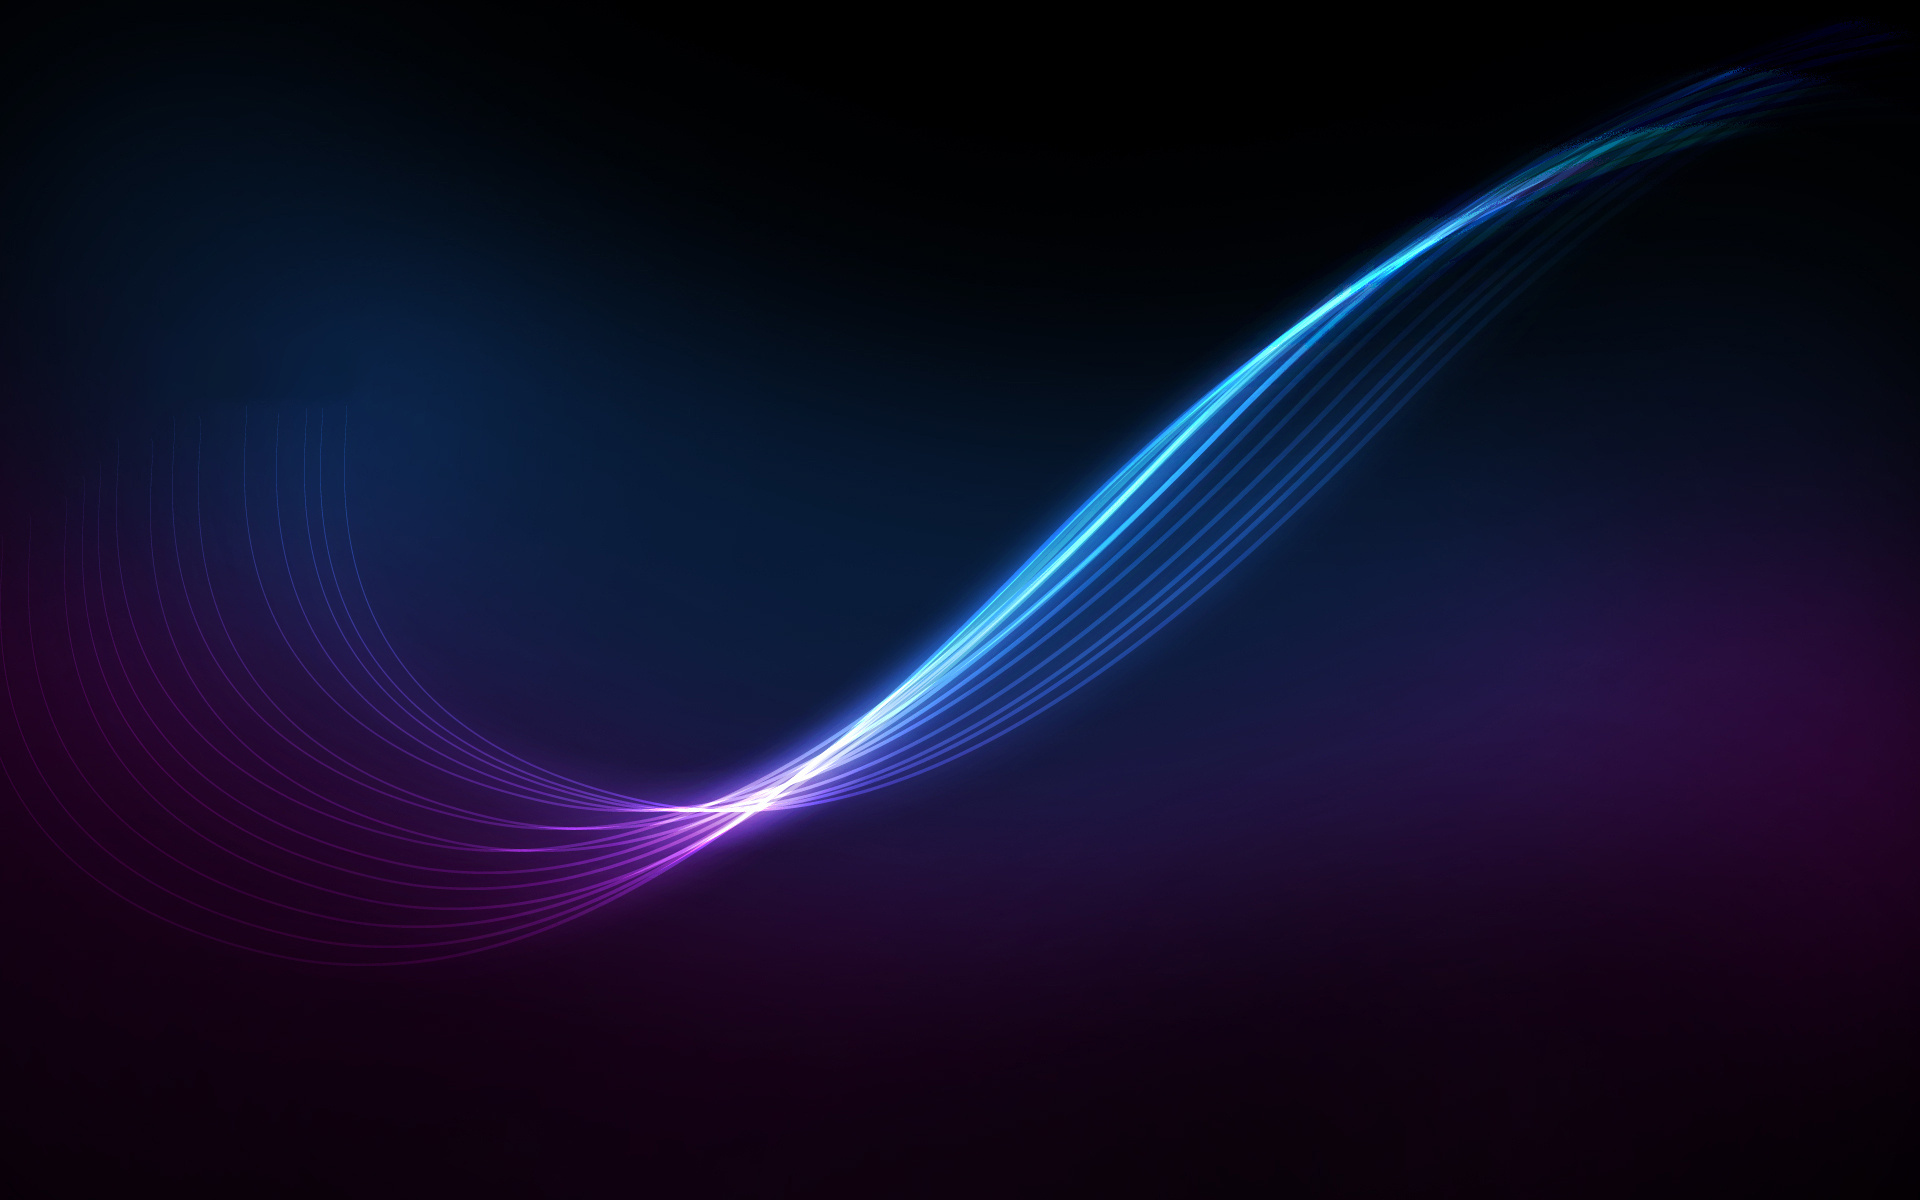 Id 860734 Wallpaper Abyss: 1 Dark Turquoise Purple HD Wallpapers